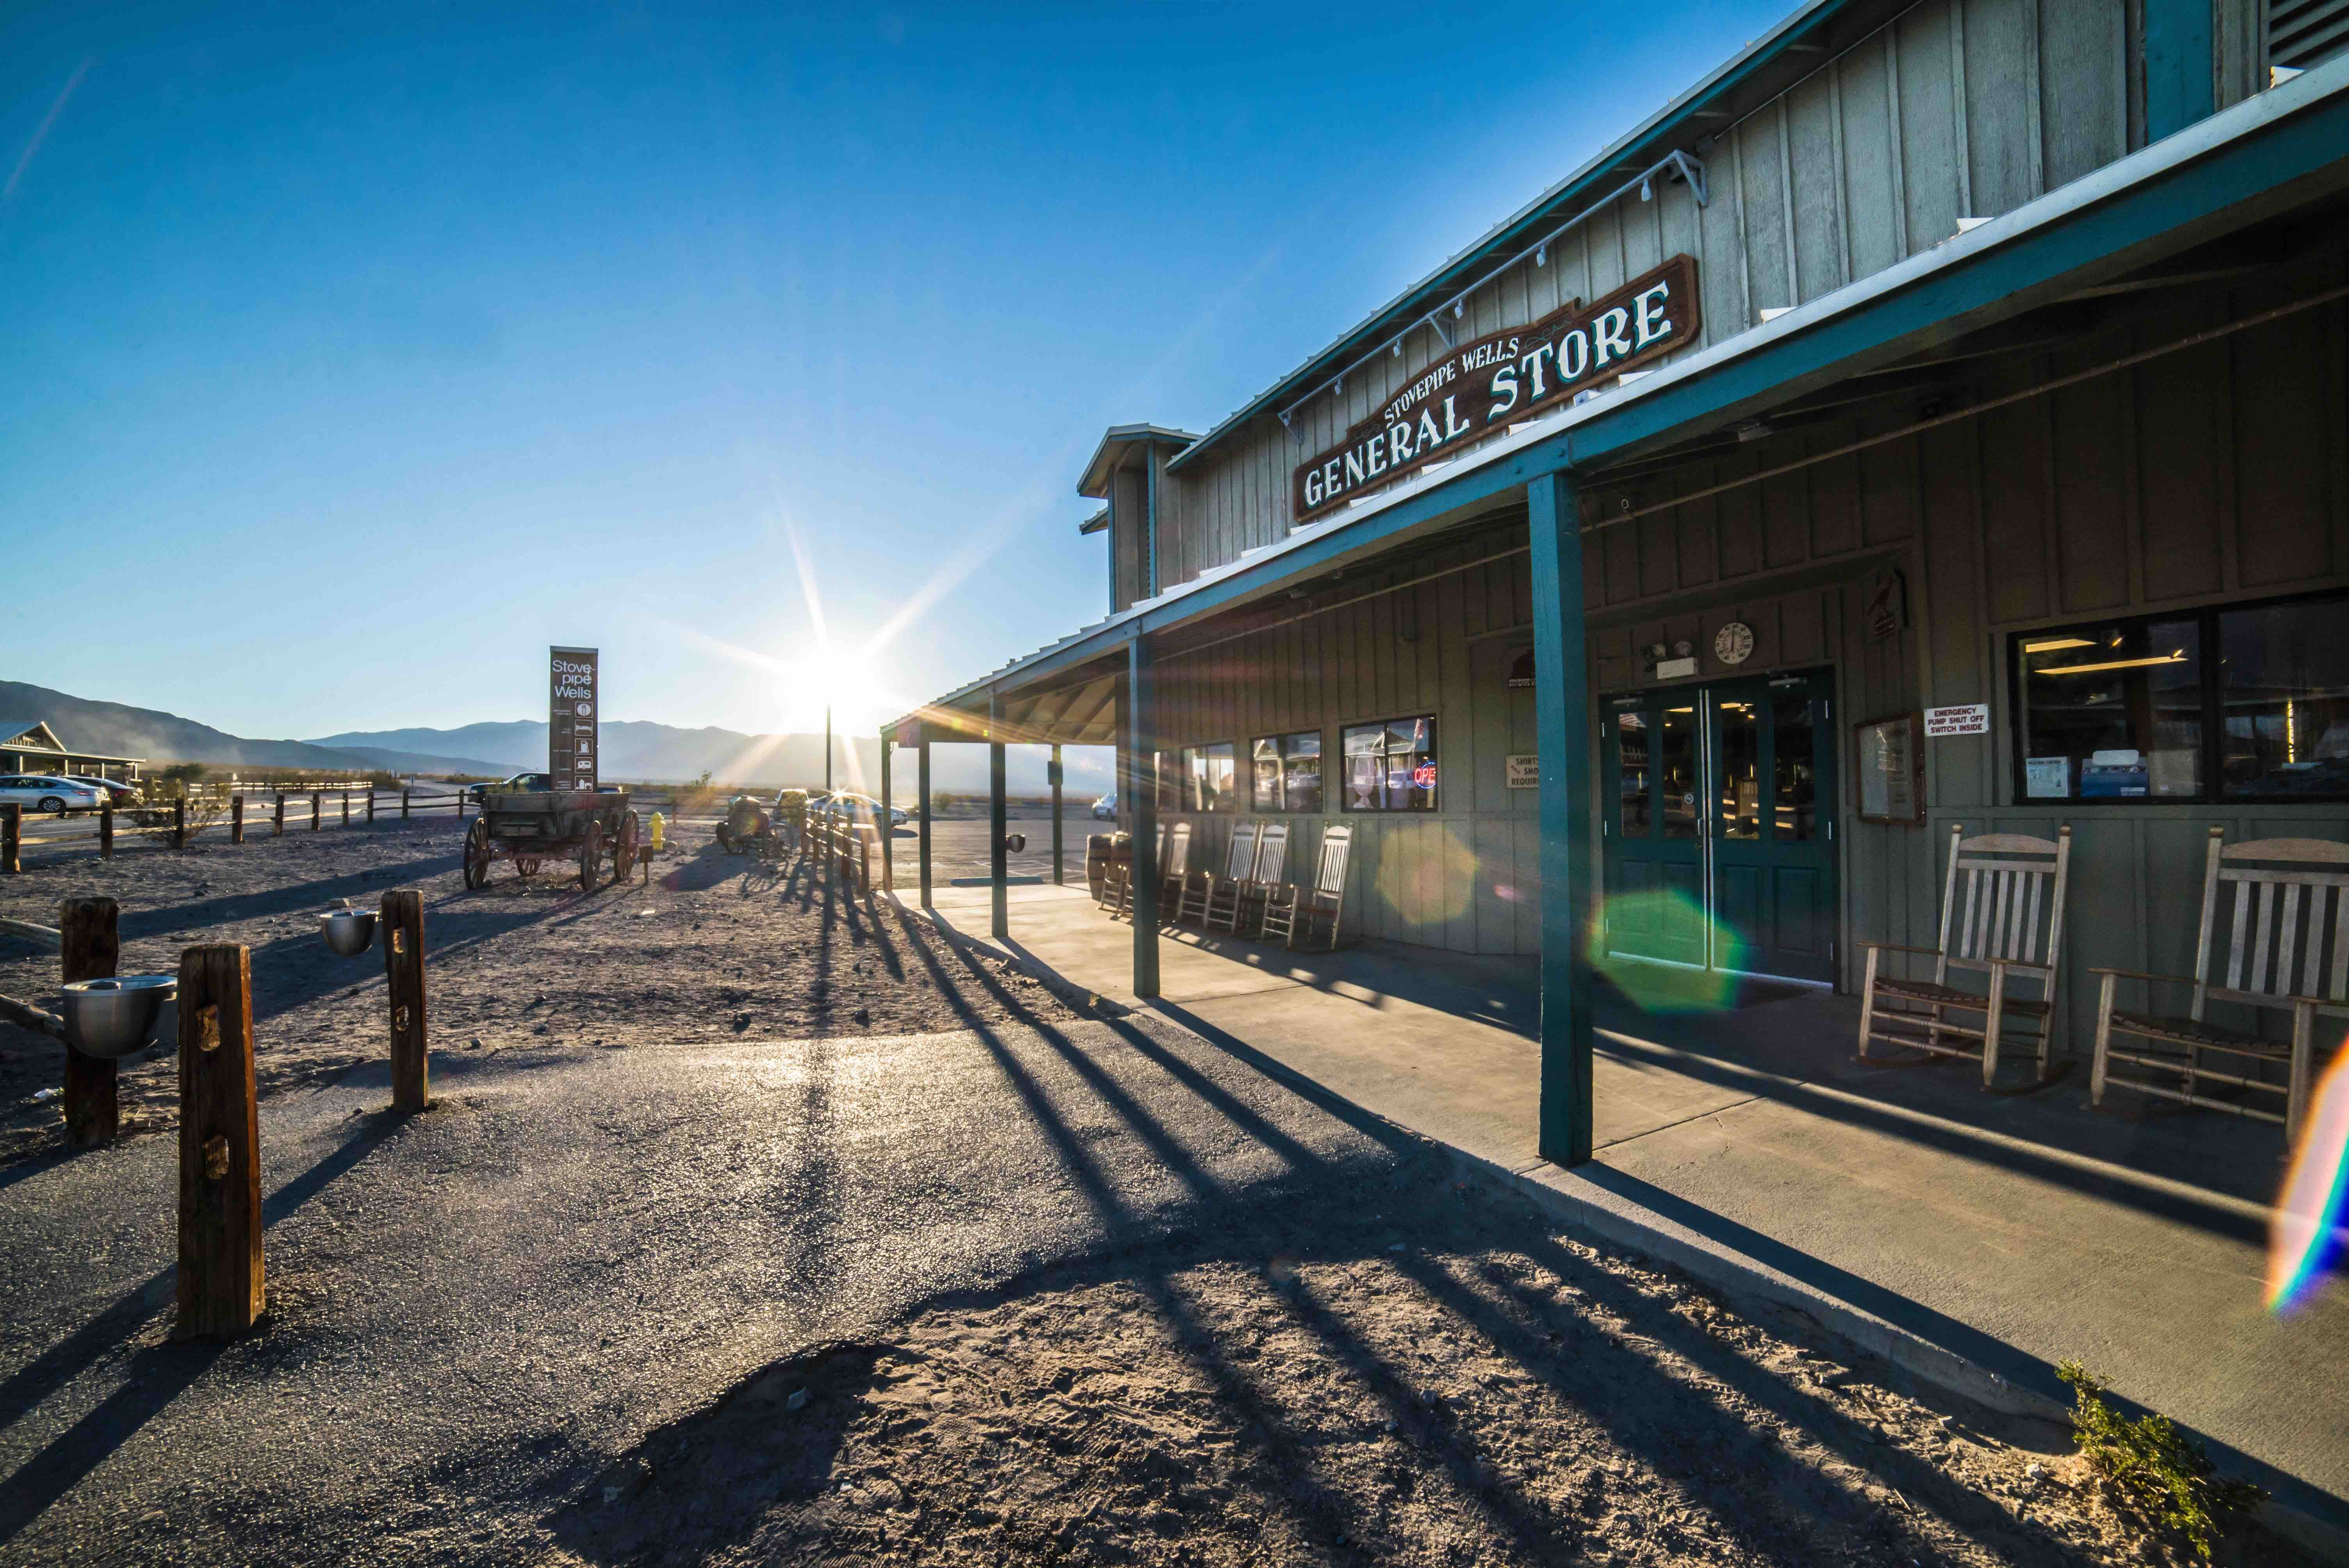 Visit the Texas General Store by renting a charter bus.